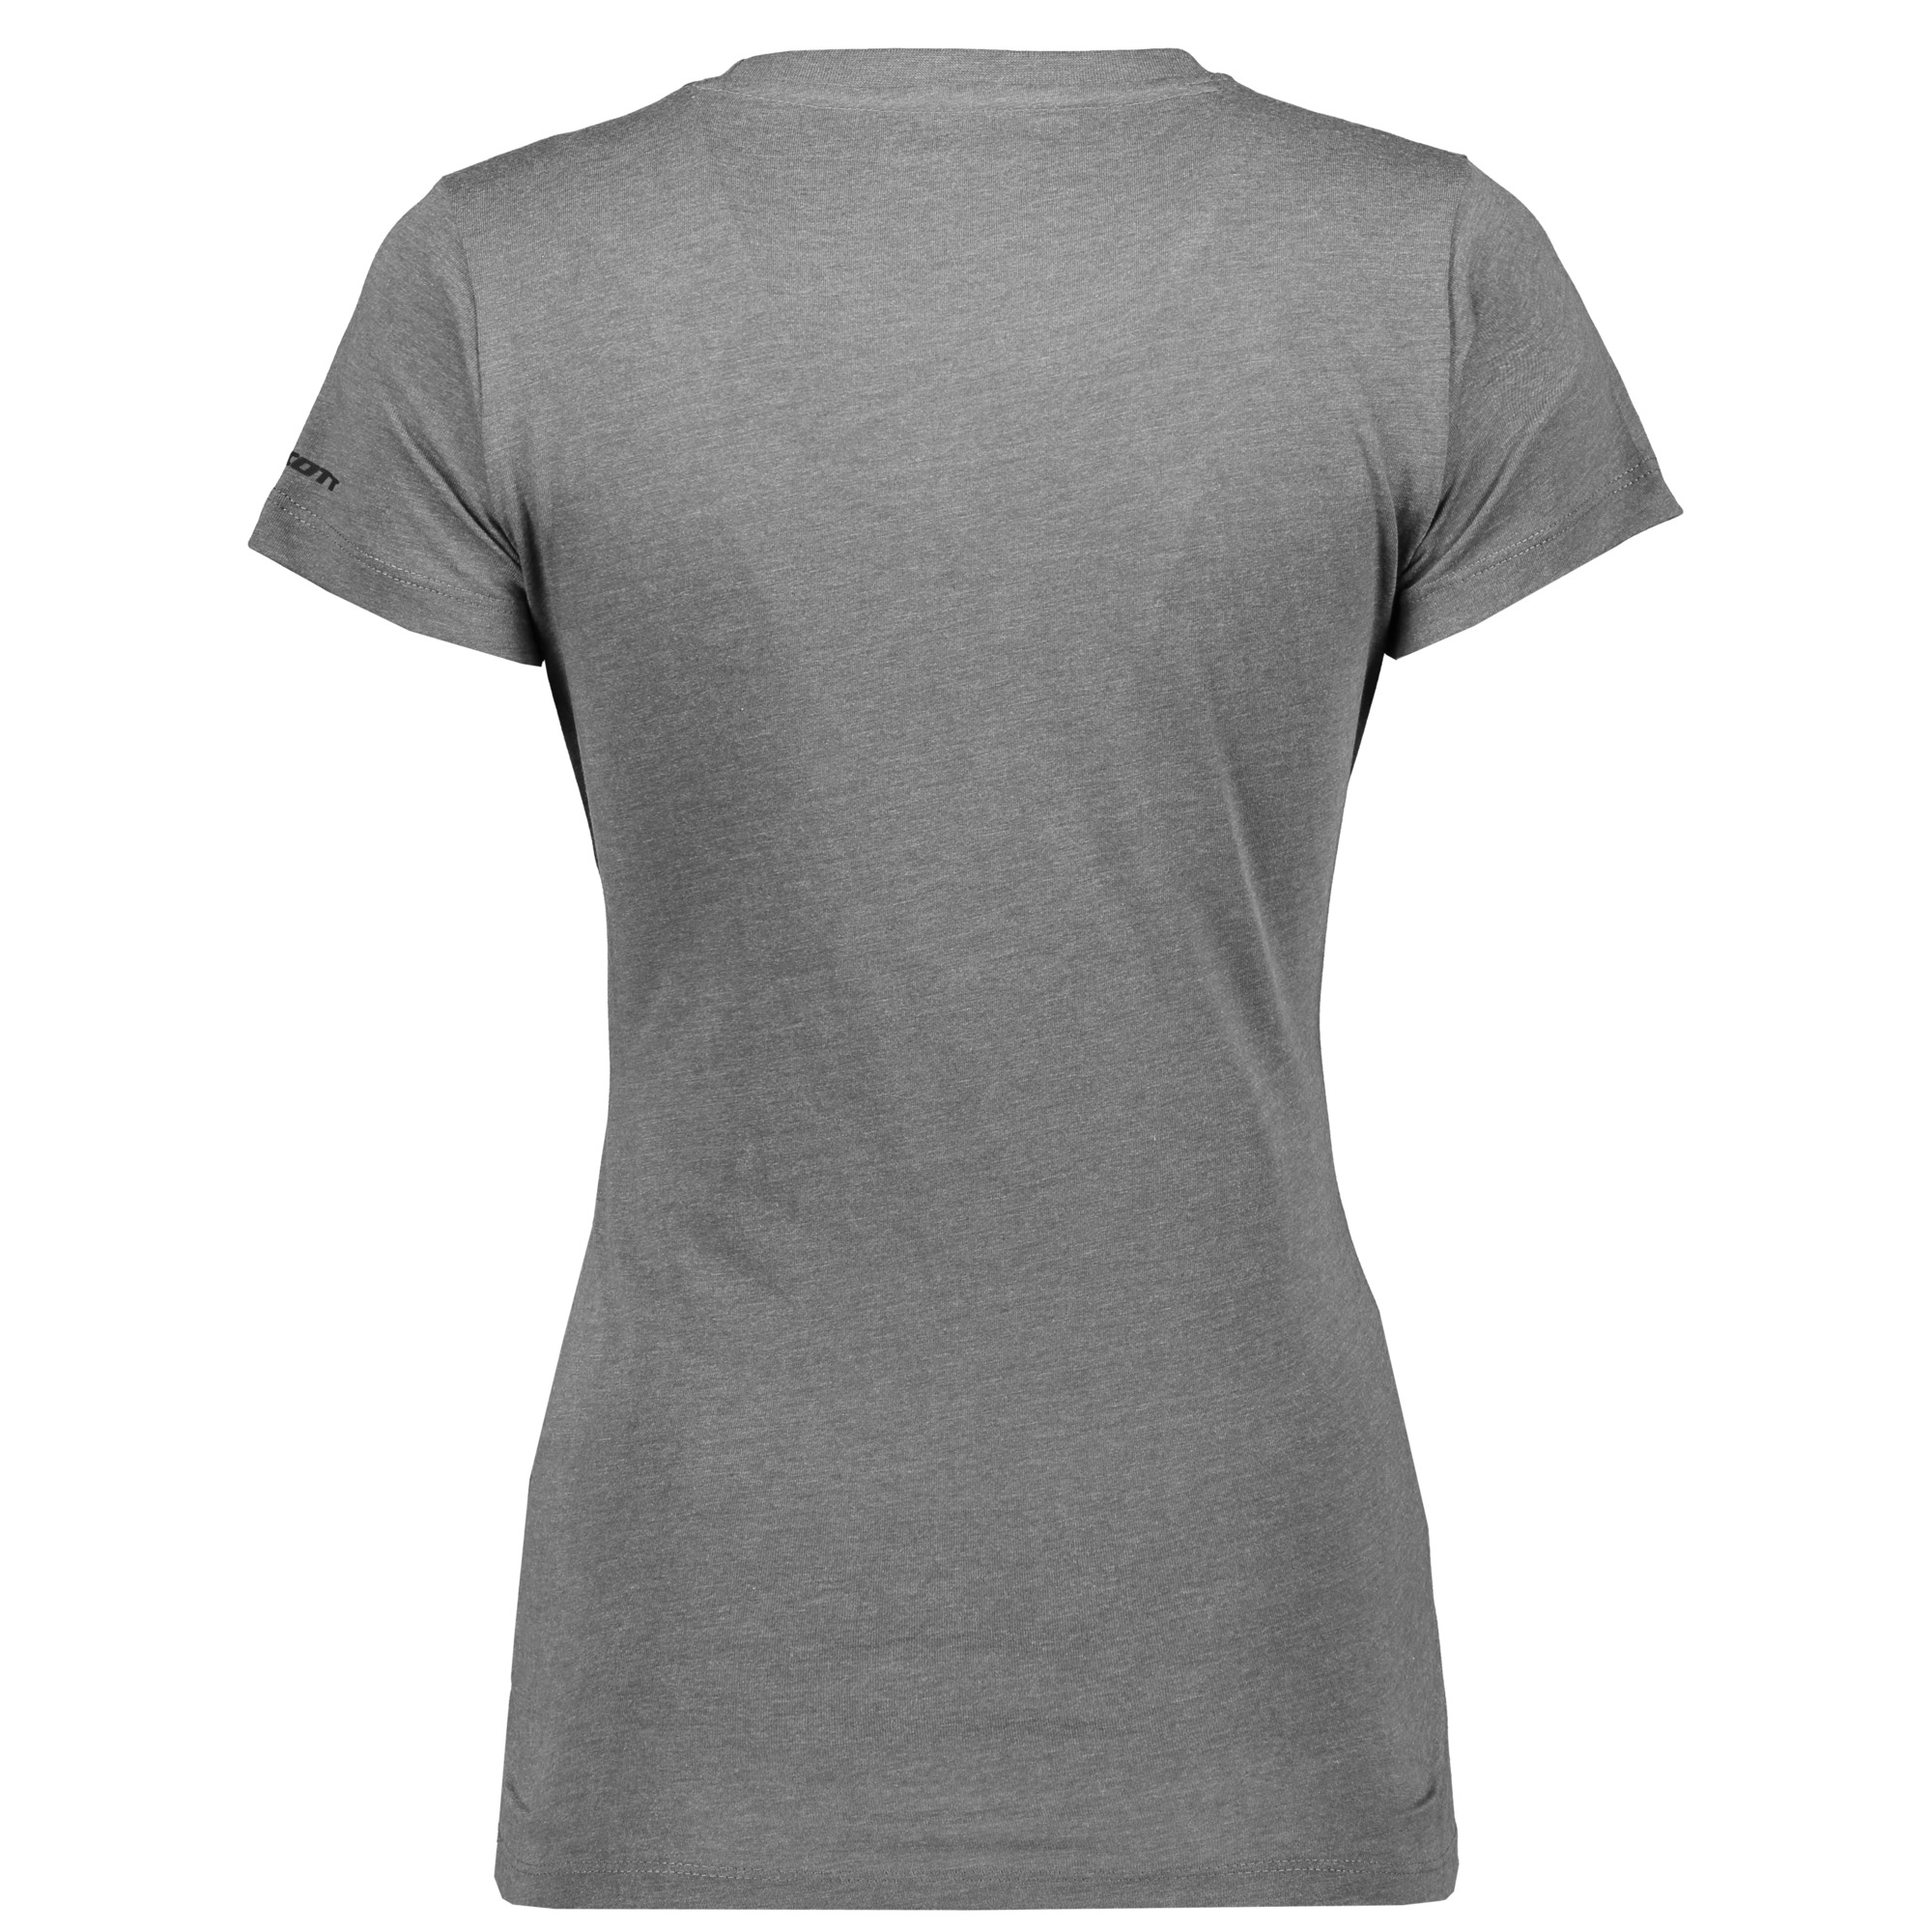 SCOTT 10 Casual s/sl Women's Tee